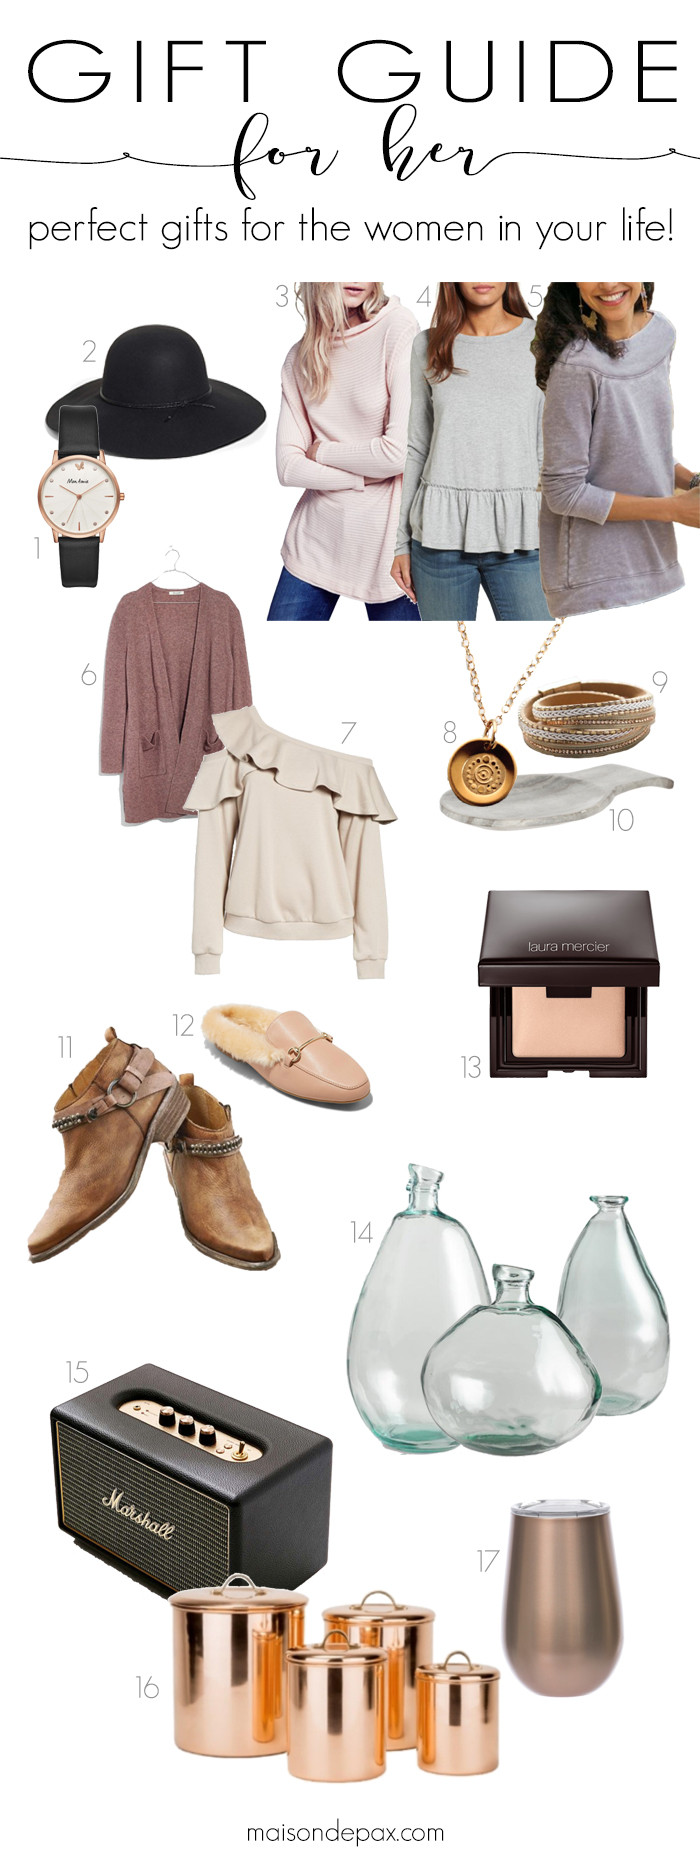 Best ideas about Gift Ideas For Her . Save or Pin Gift Ideas For Her Maison de Pax Now.